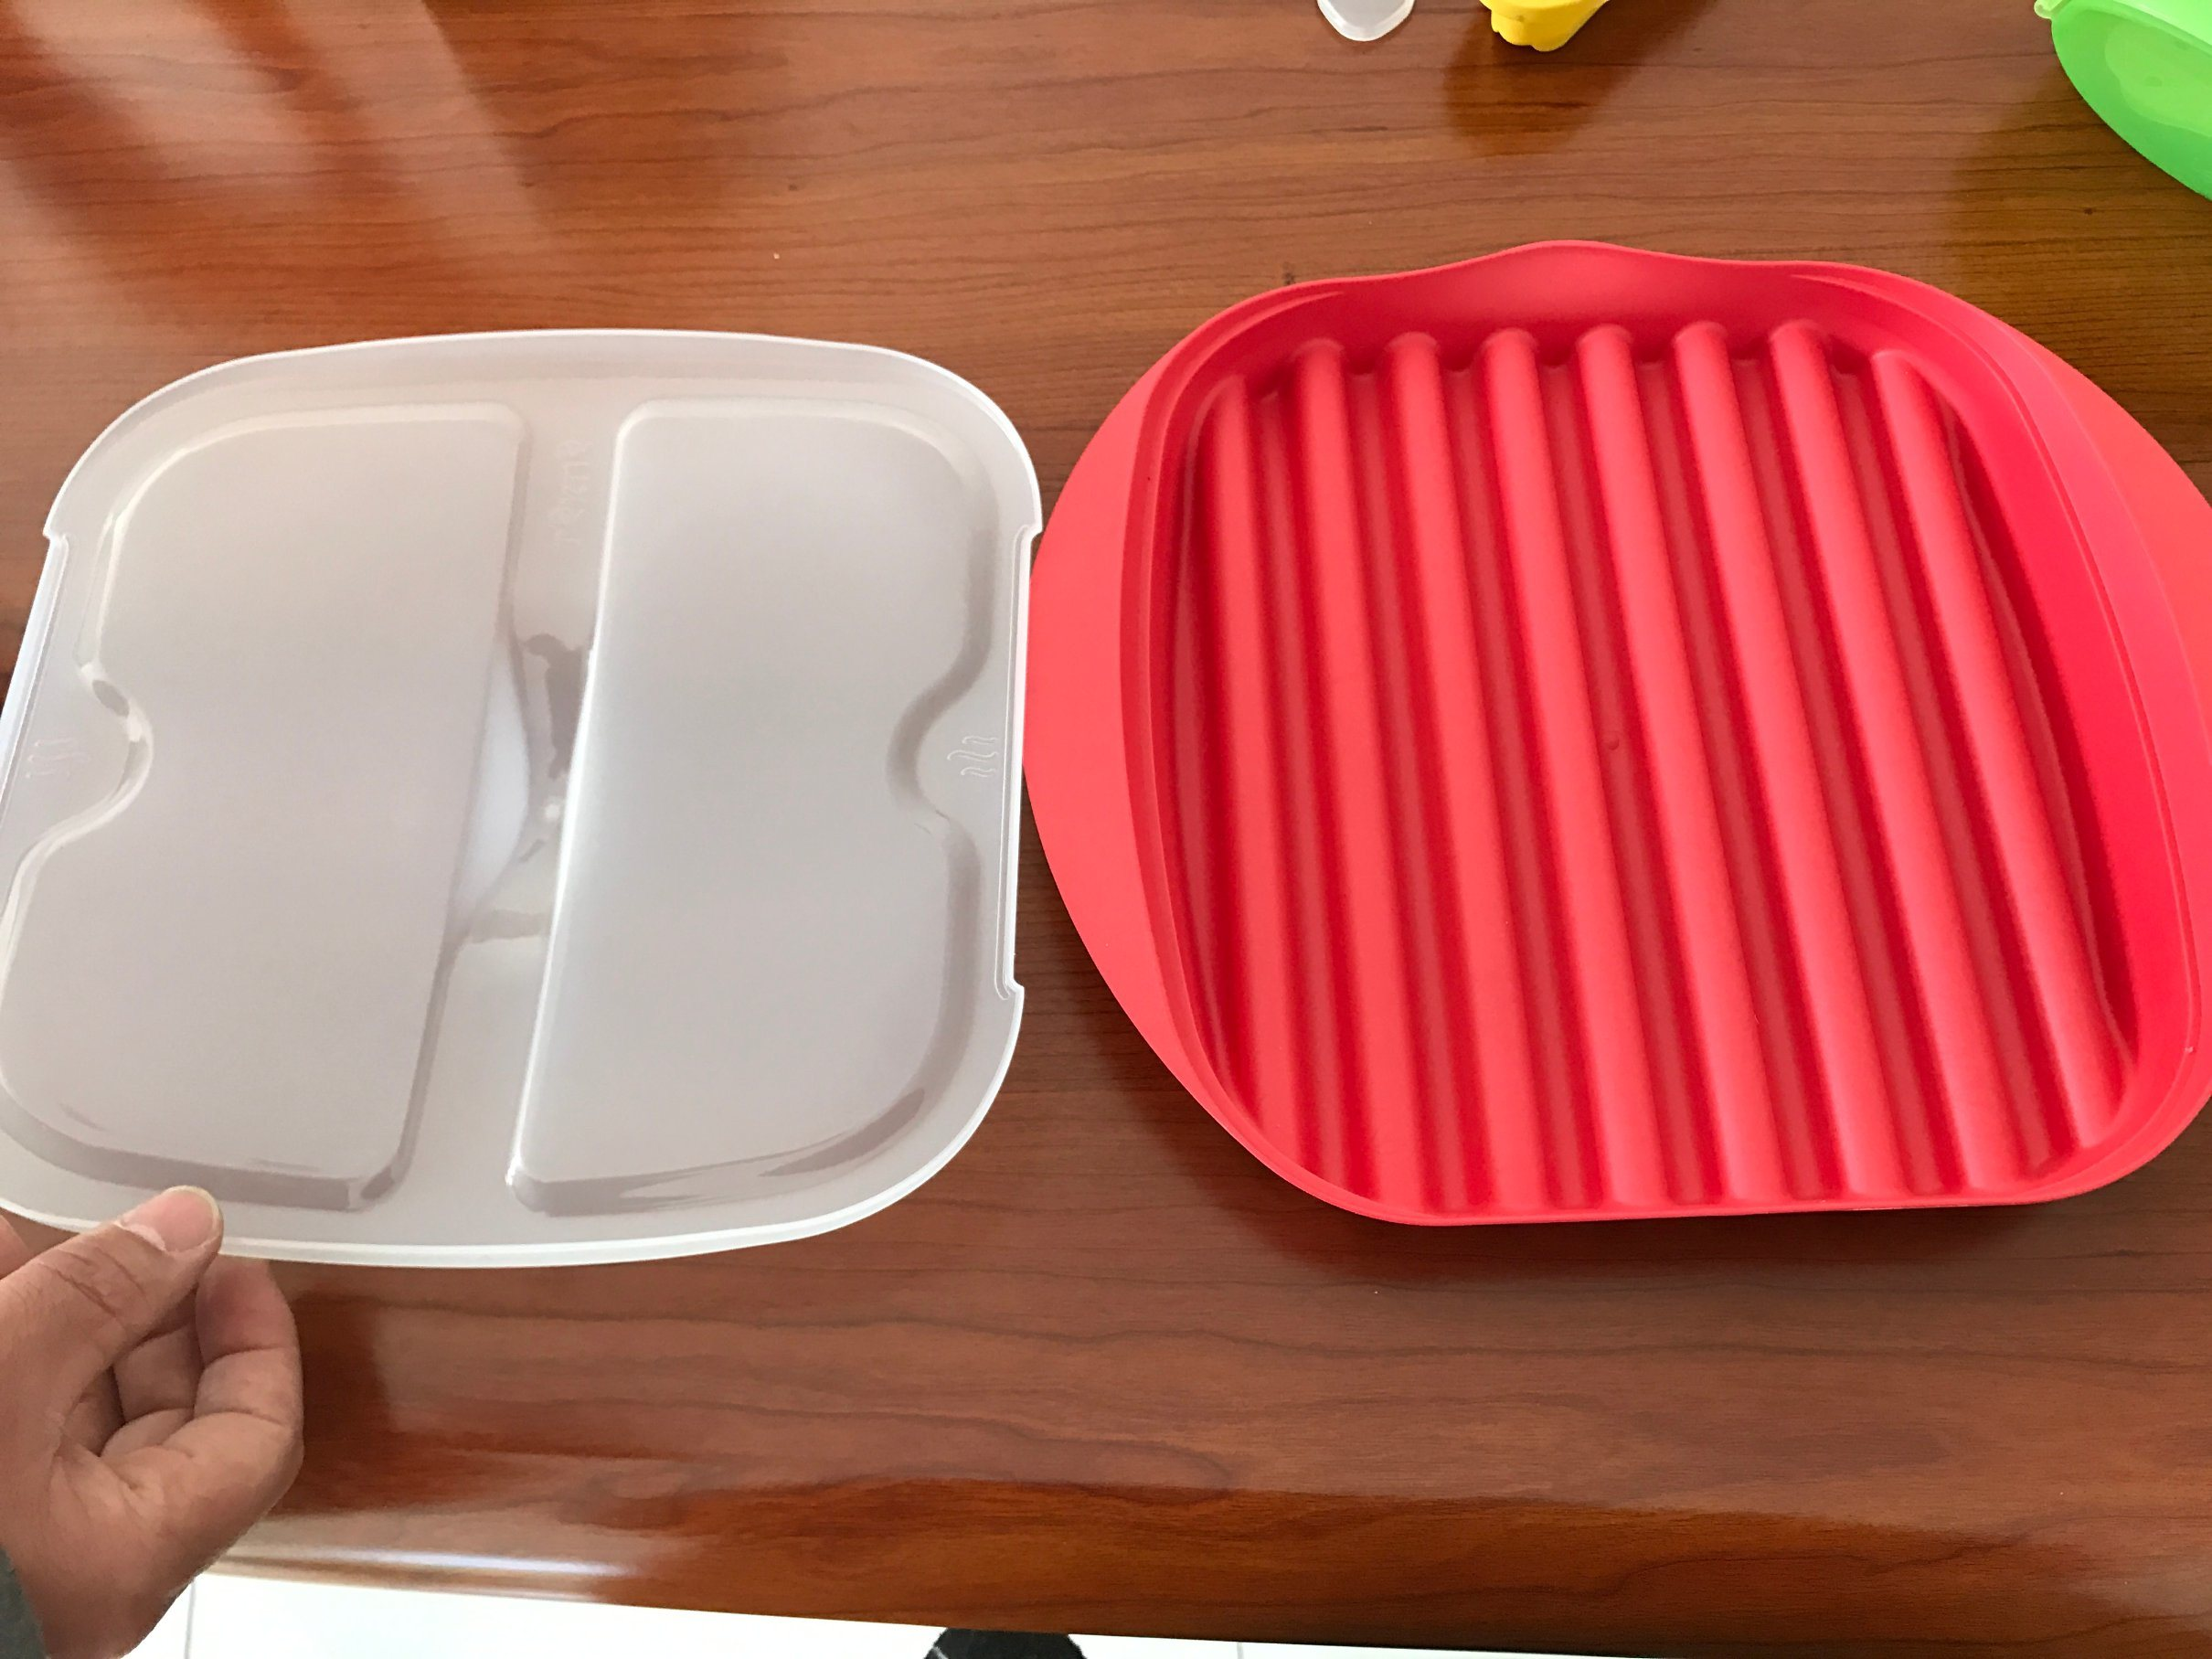 Microwave Bacon Cooker BBQ Tray / You Can Cook up to 6 Slices in Just 3-4 Minutes.